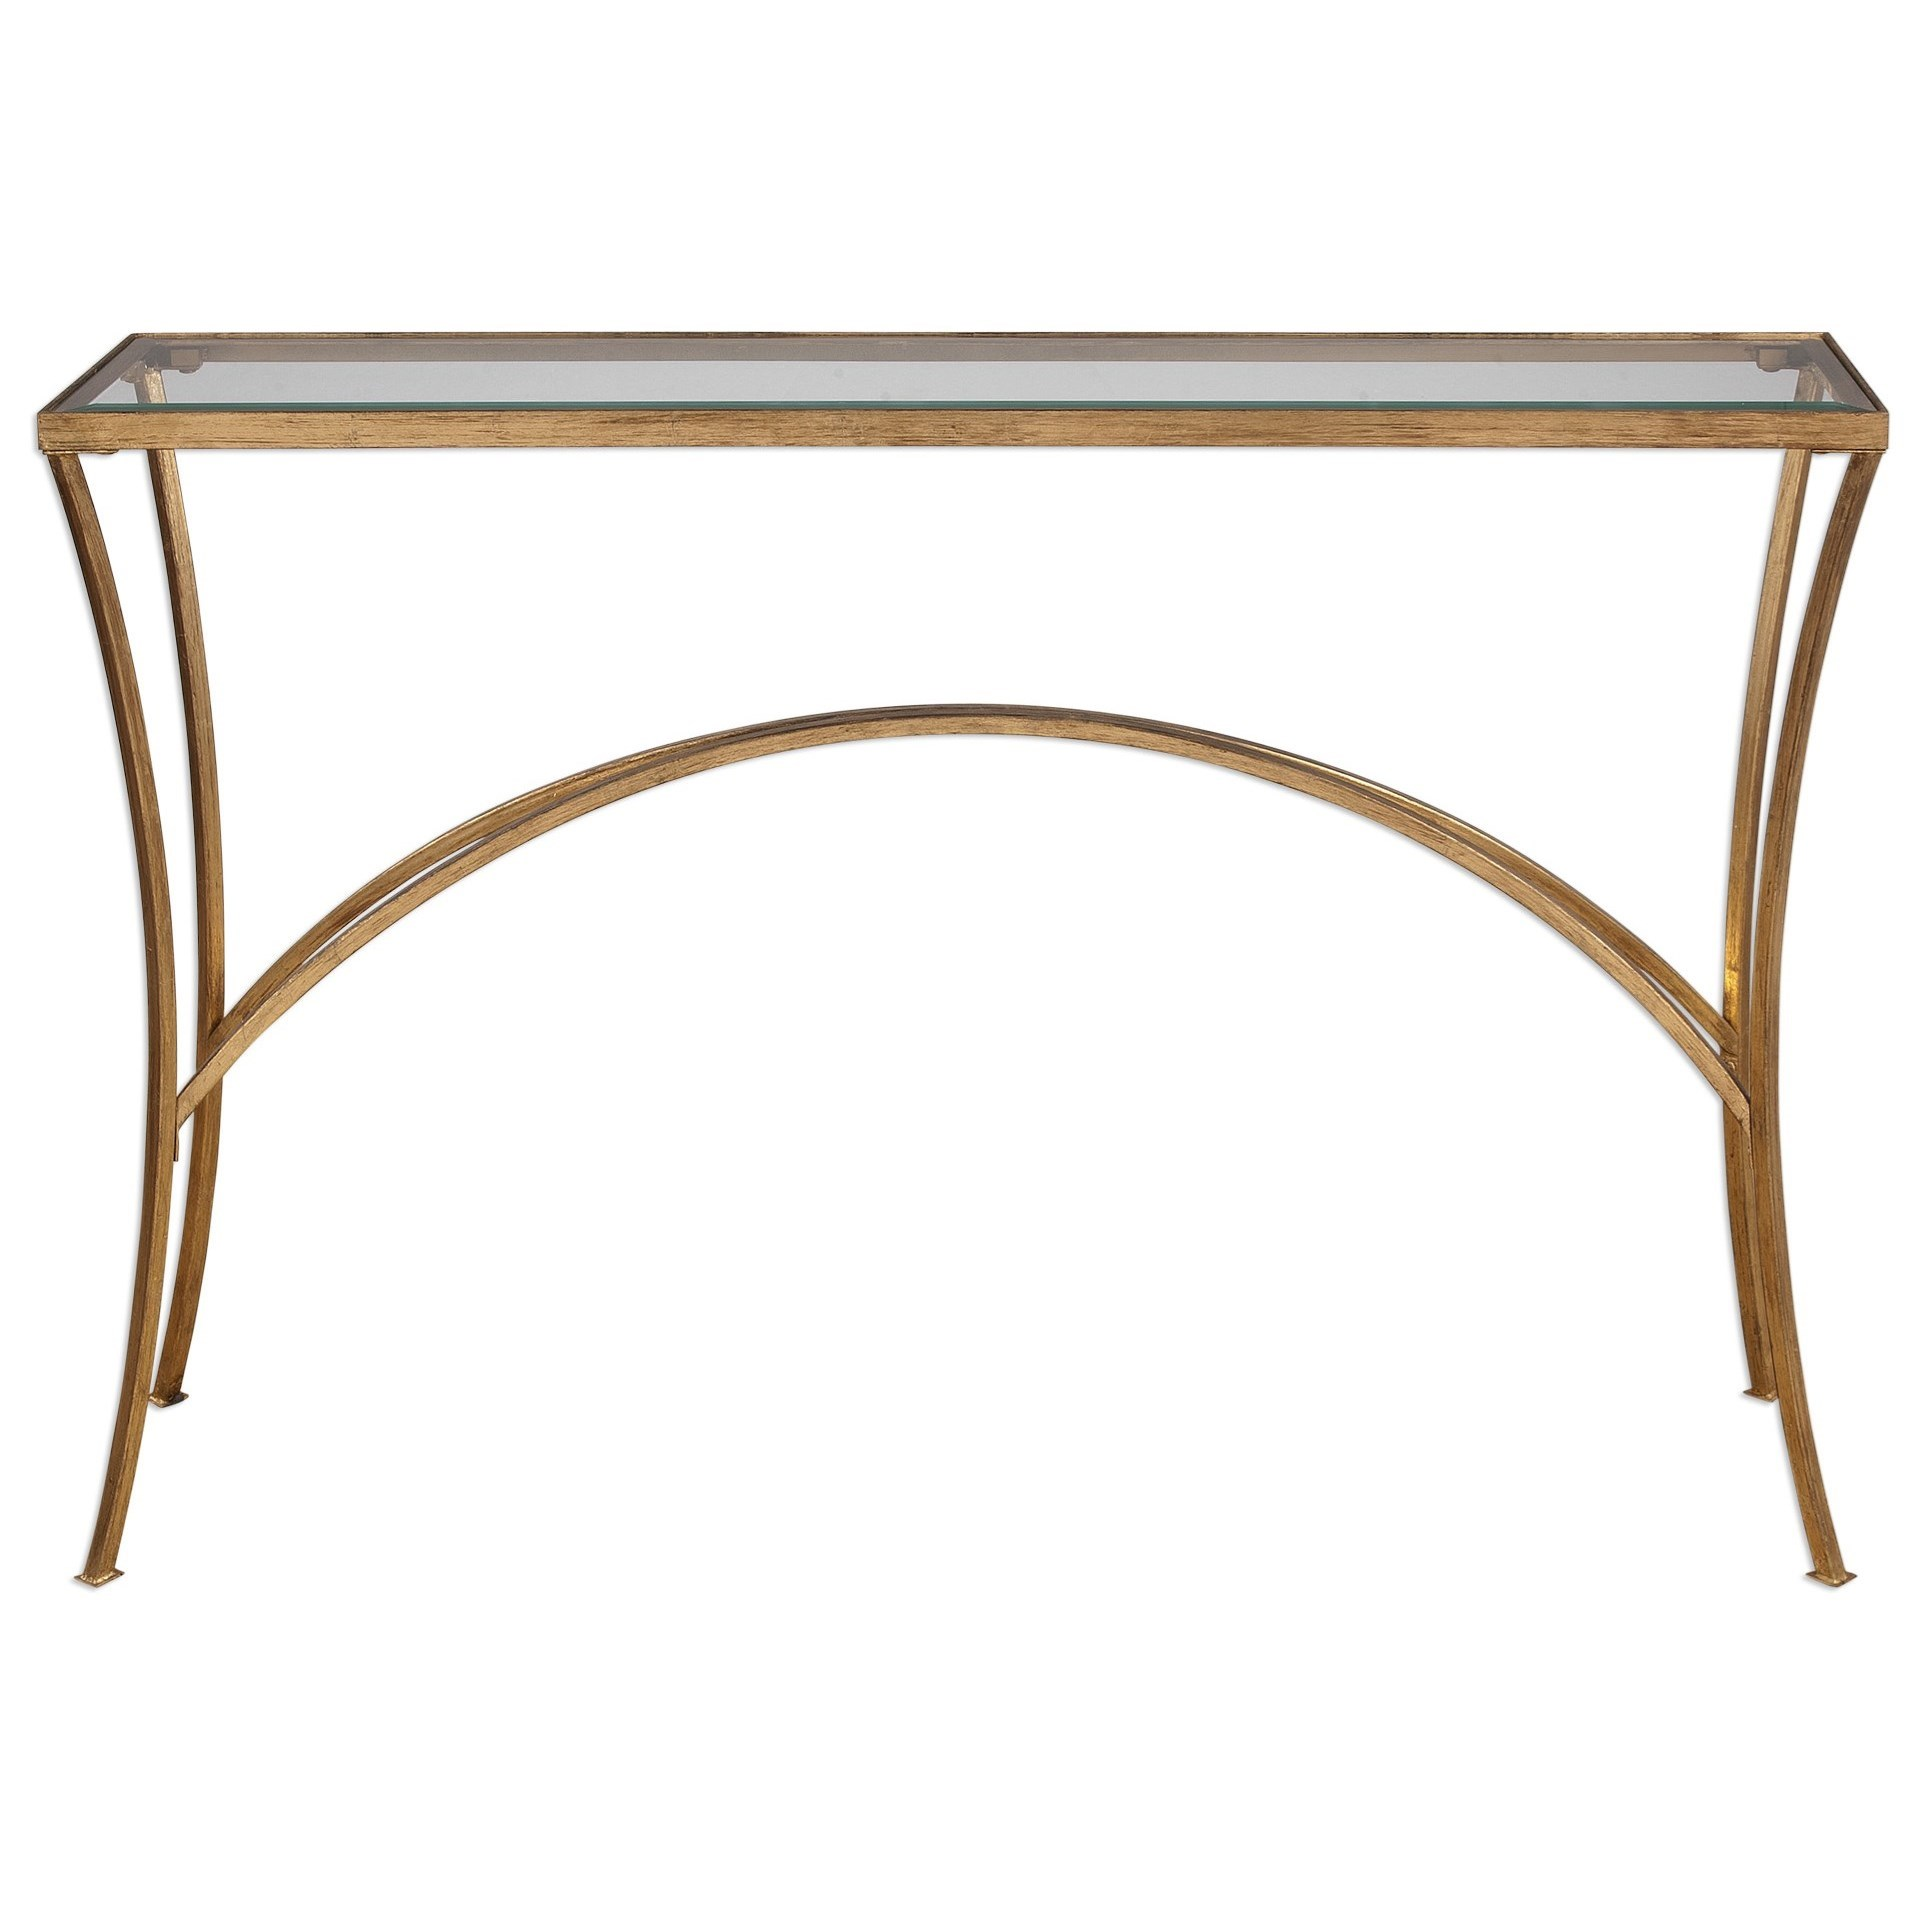 Accent Furniture - Occasional Tables Alayna Gold Console Table by Uttermost at Factory Direct Furniture